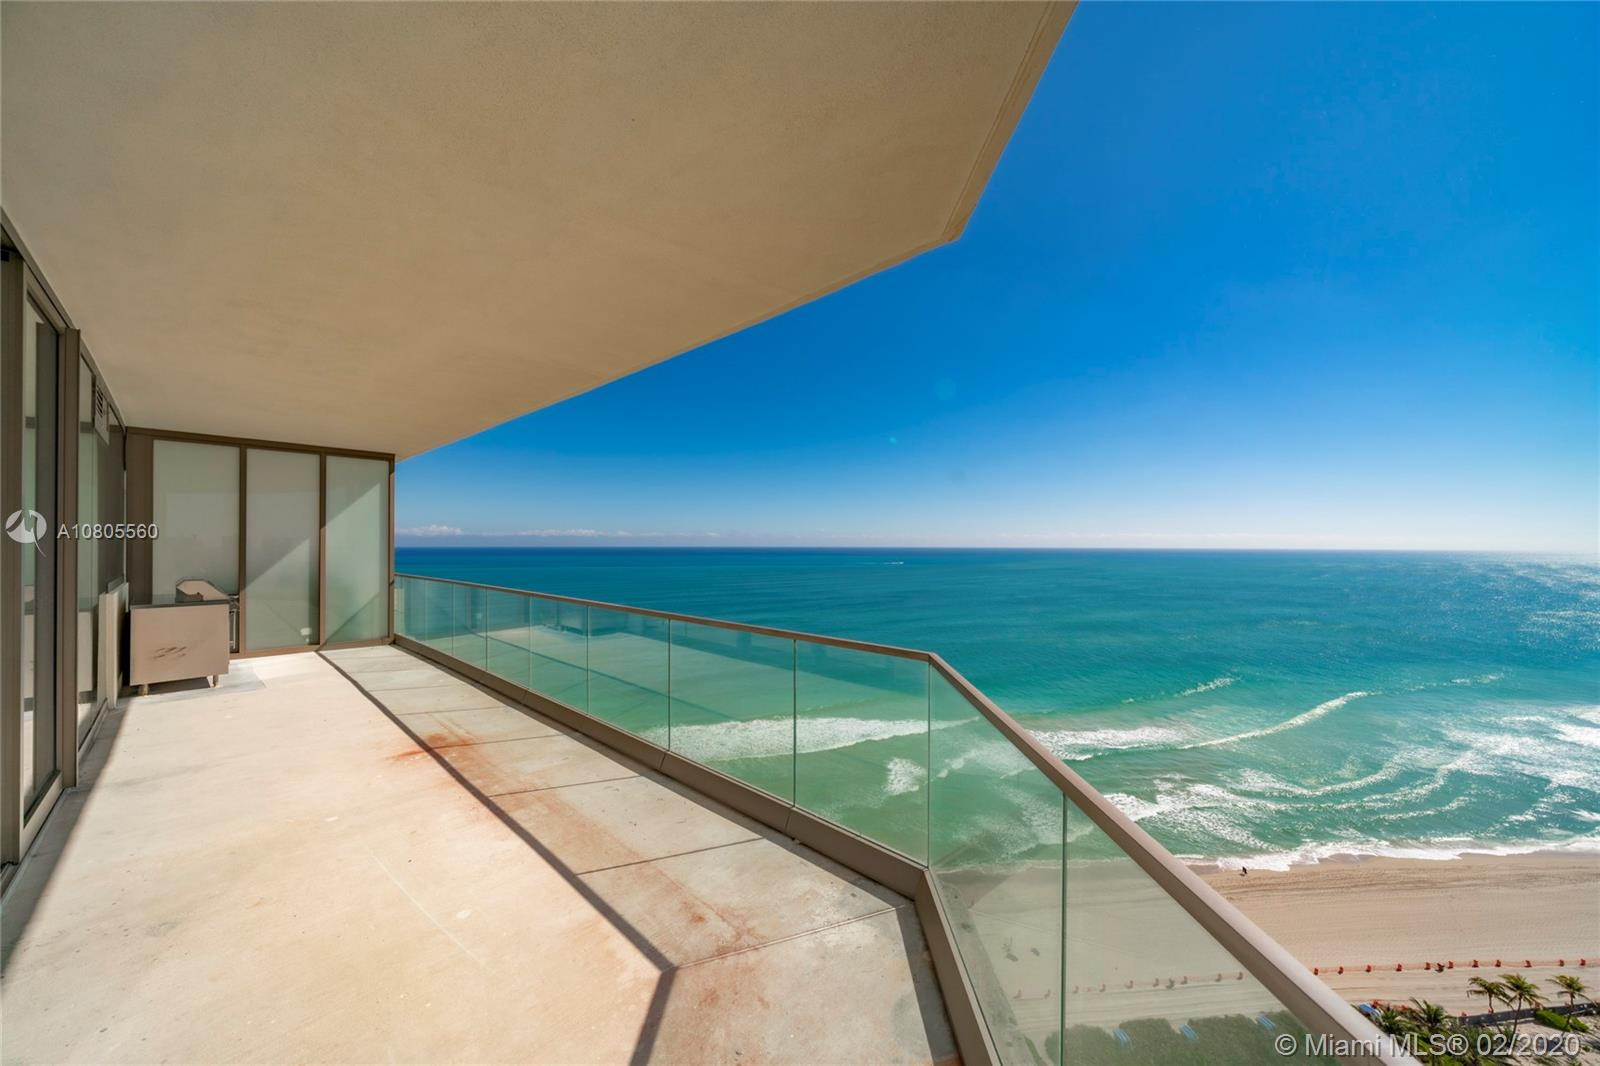 18975 Collins Ave, 2204 - Sunny Isles Beach, Florida